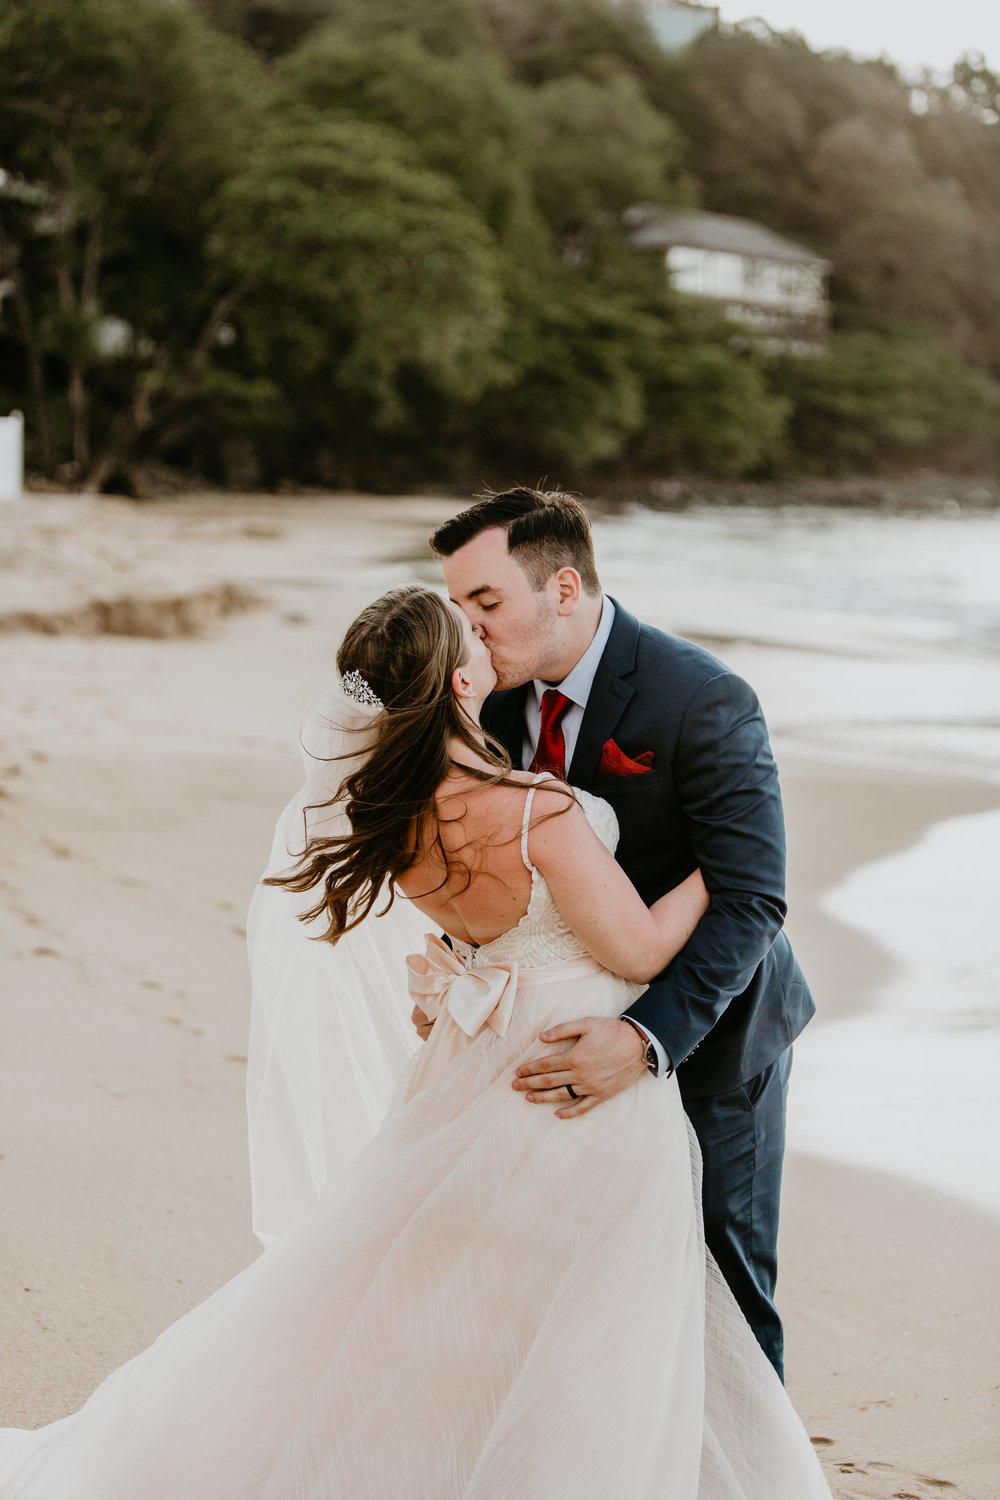 nicole-daacke-photography-destination-wedding-in-st-lucia-sandals-la-toc-intimate-island-wedding-carribean-elopement-photographer-chill-island-wedding-90.jpg